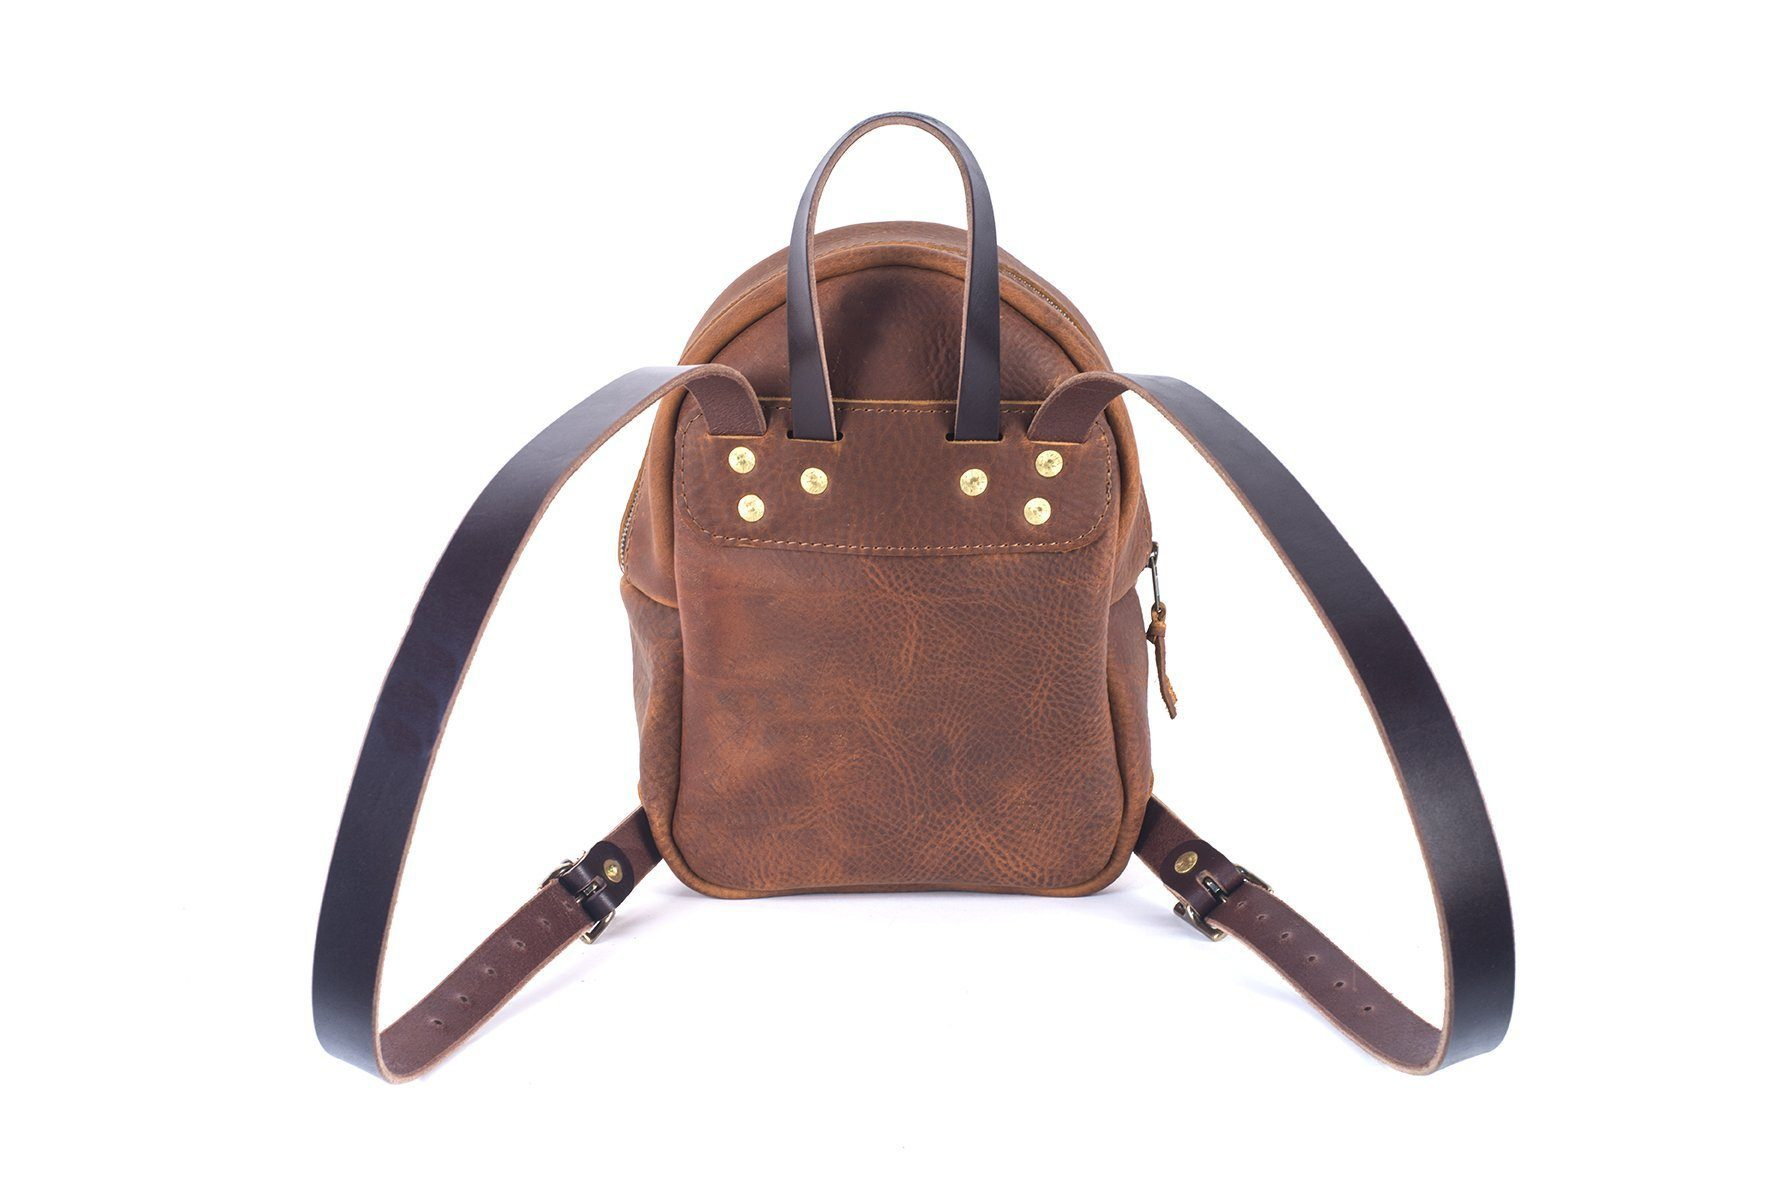 Backpack purse in Saddle color leather Image t 3add76c525468